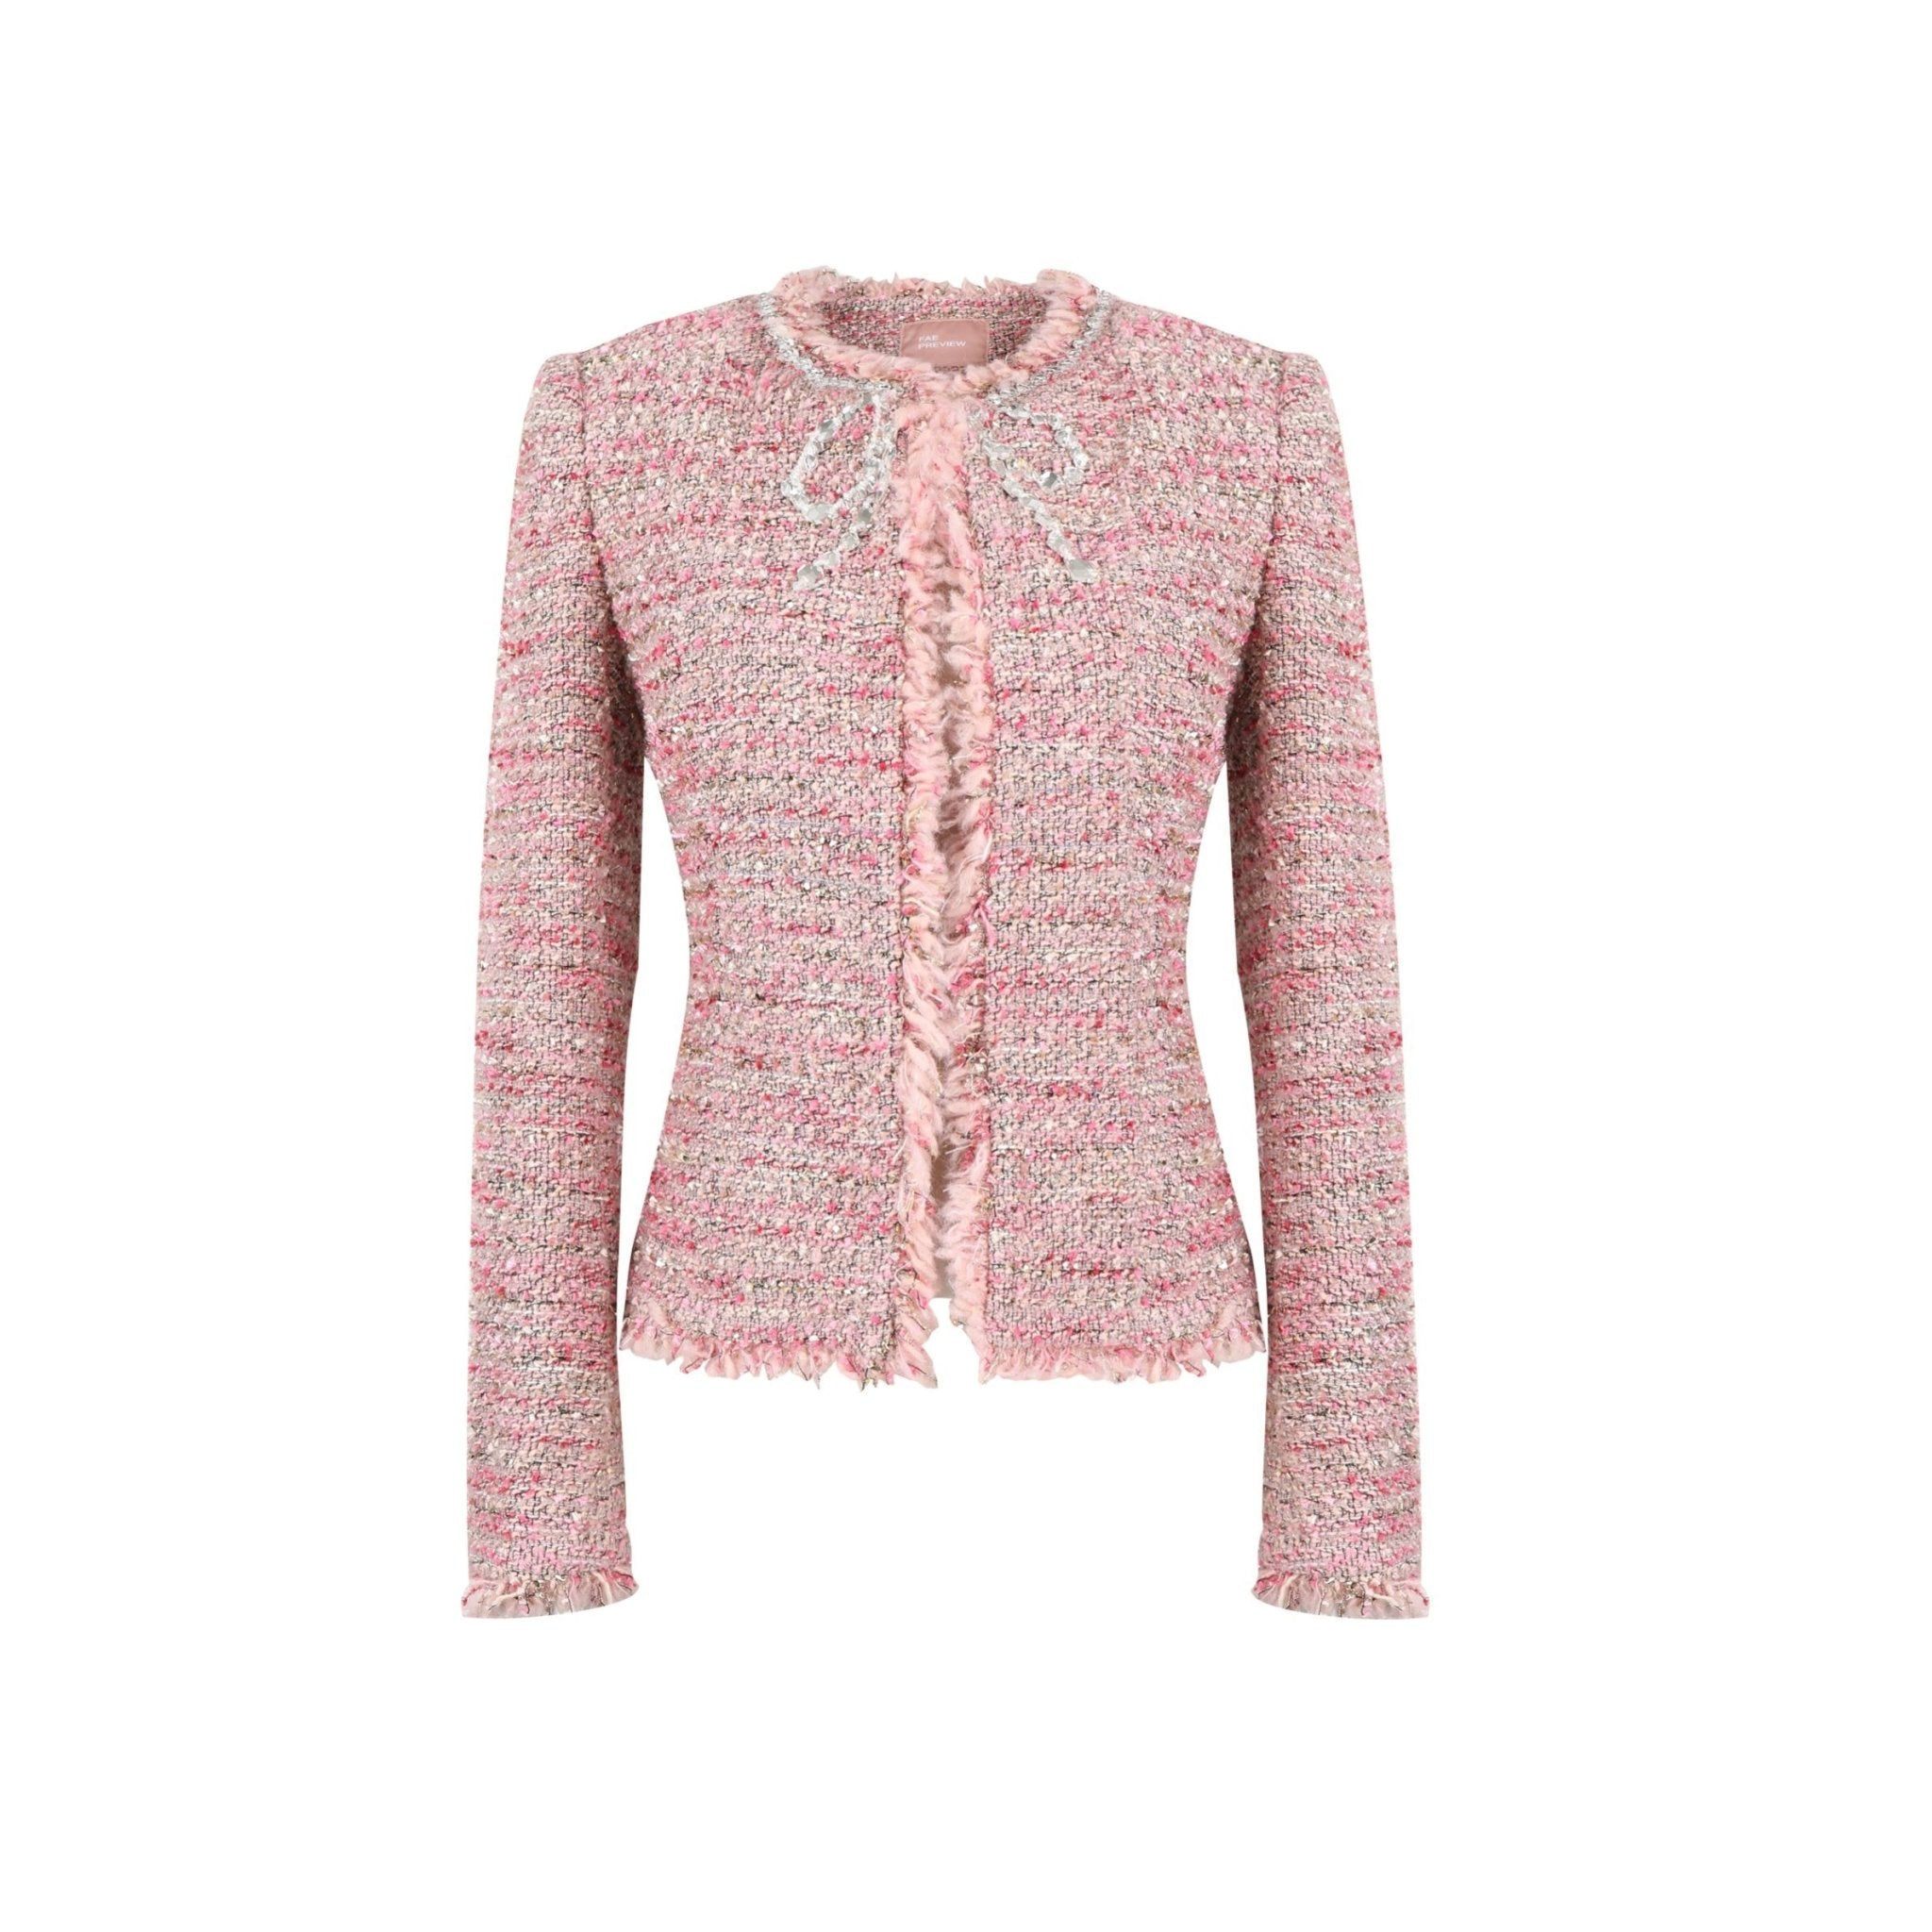 SASA MAX Pink Bowtie Tweed Jacket | MADA IN CHINA